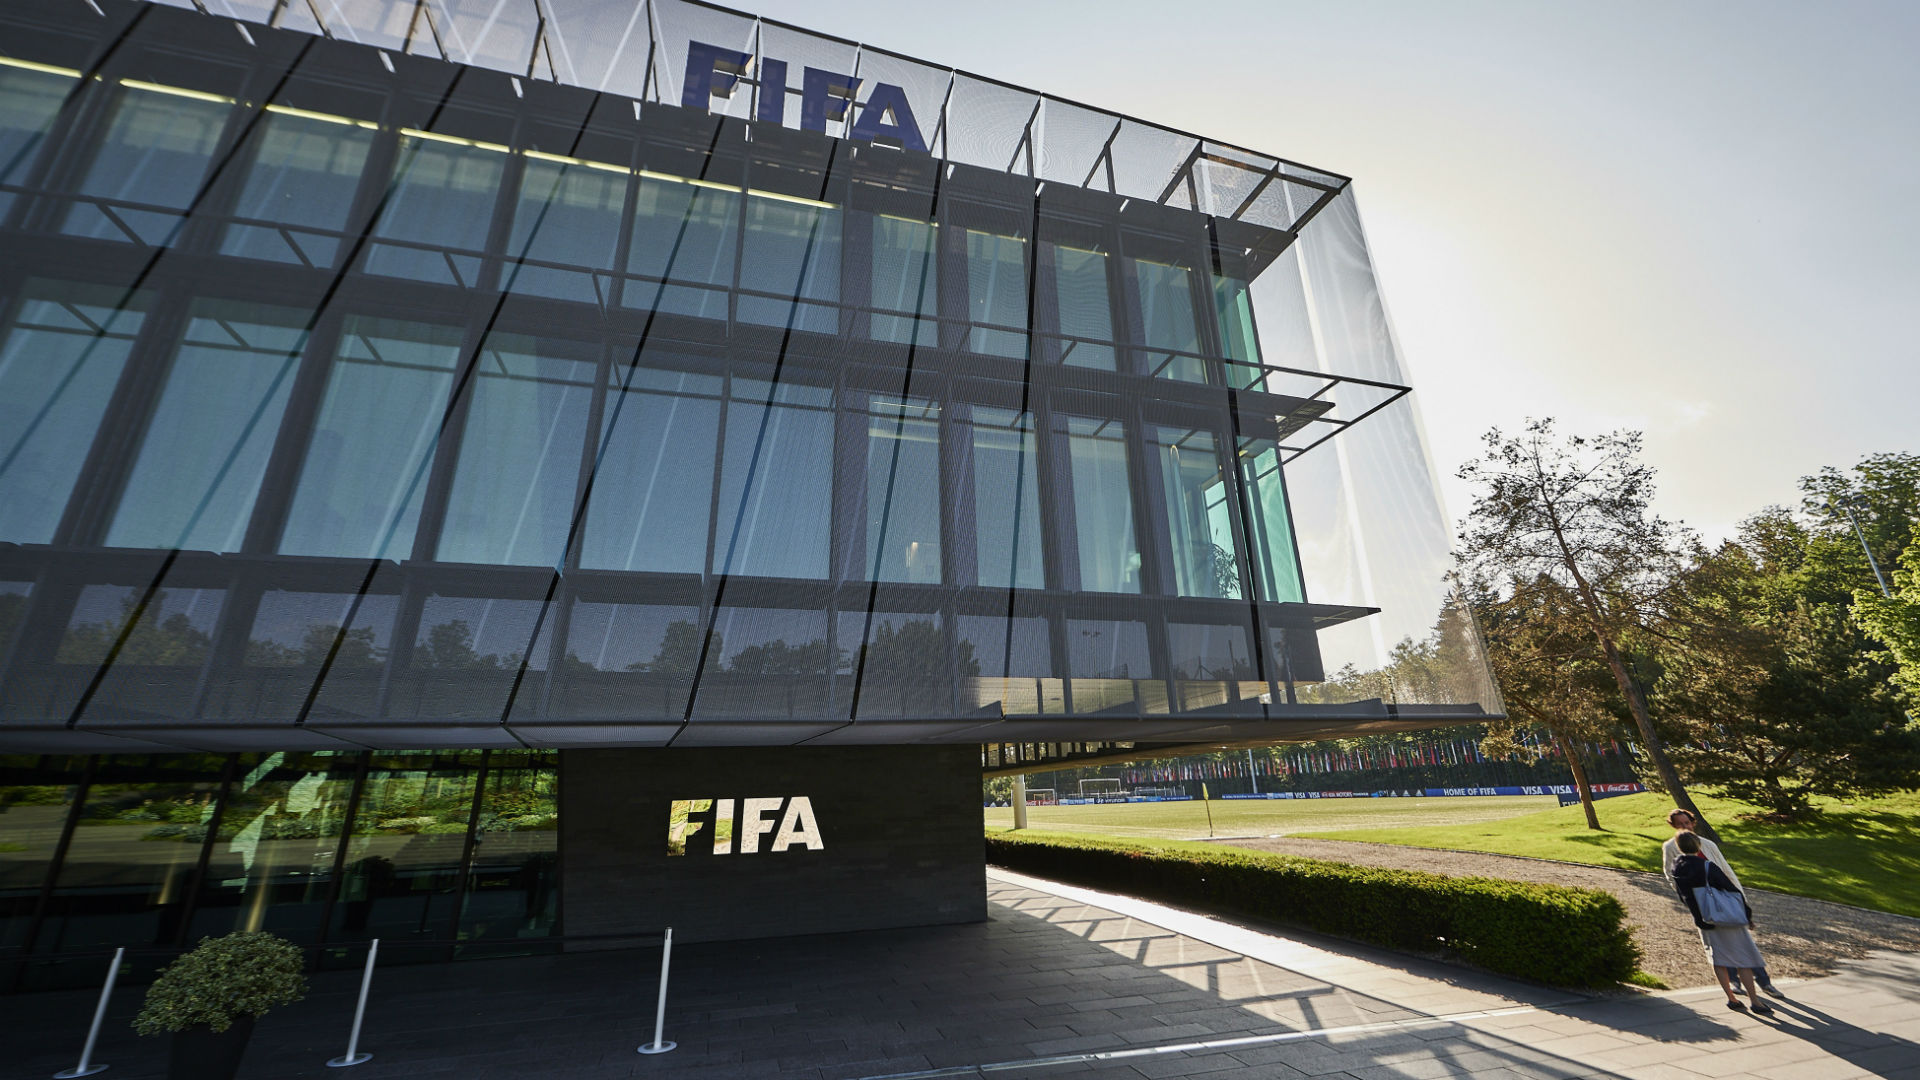 FIFA-Cropped